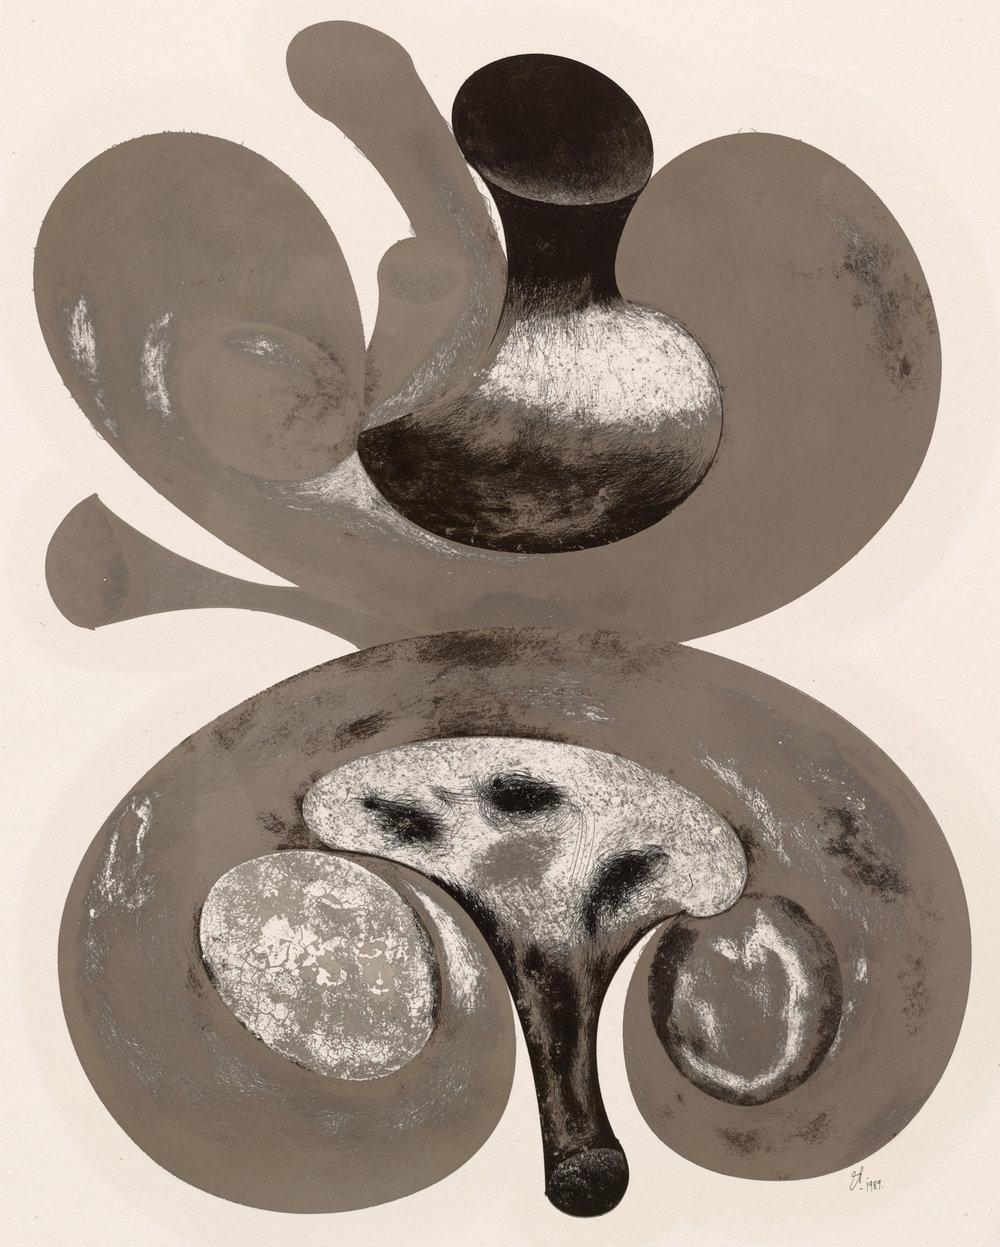 Two Mushrooms , 1998 Cliché verre, platinum-palladium print (from original ink drawing) on paper mounted on aluminum © The Irving Penn Foundation